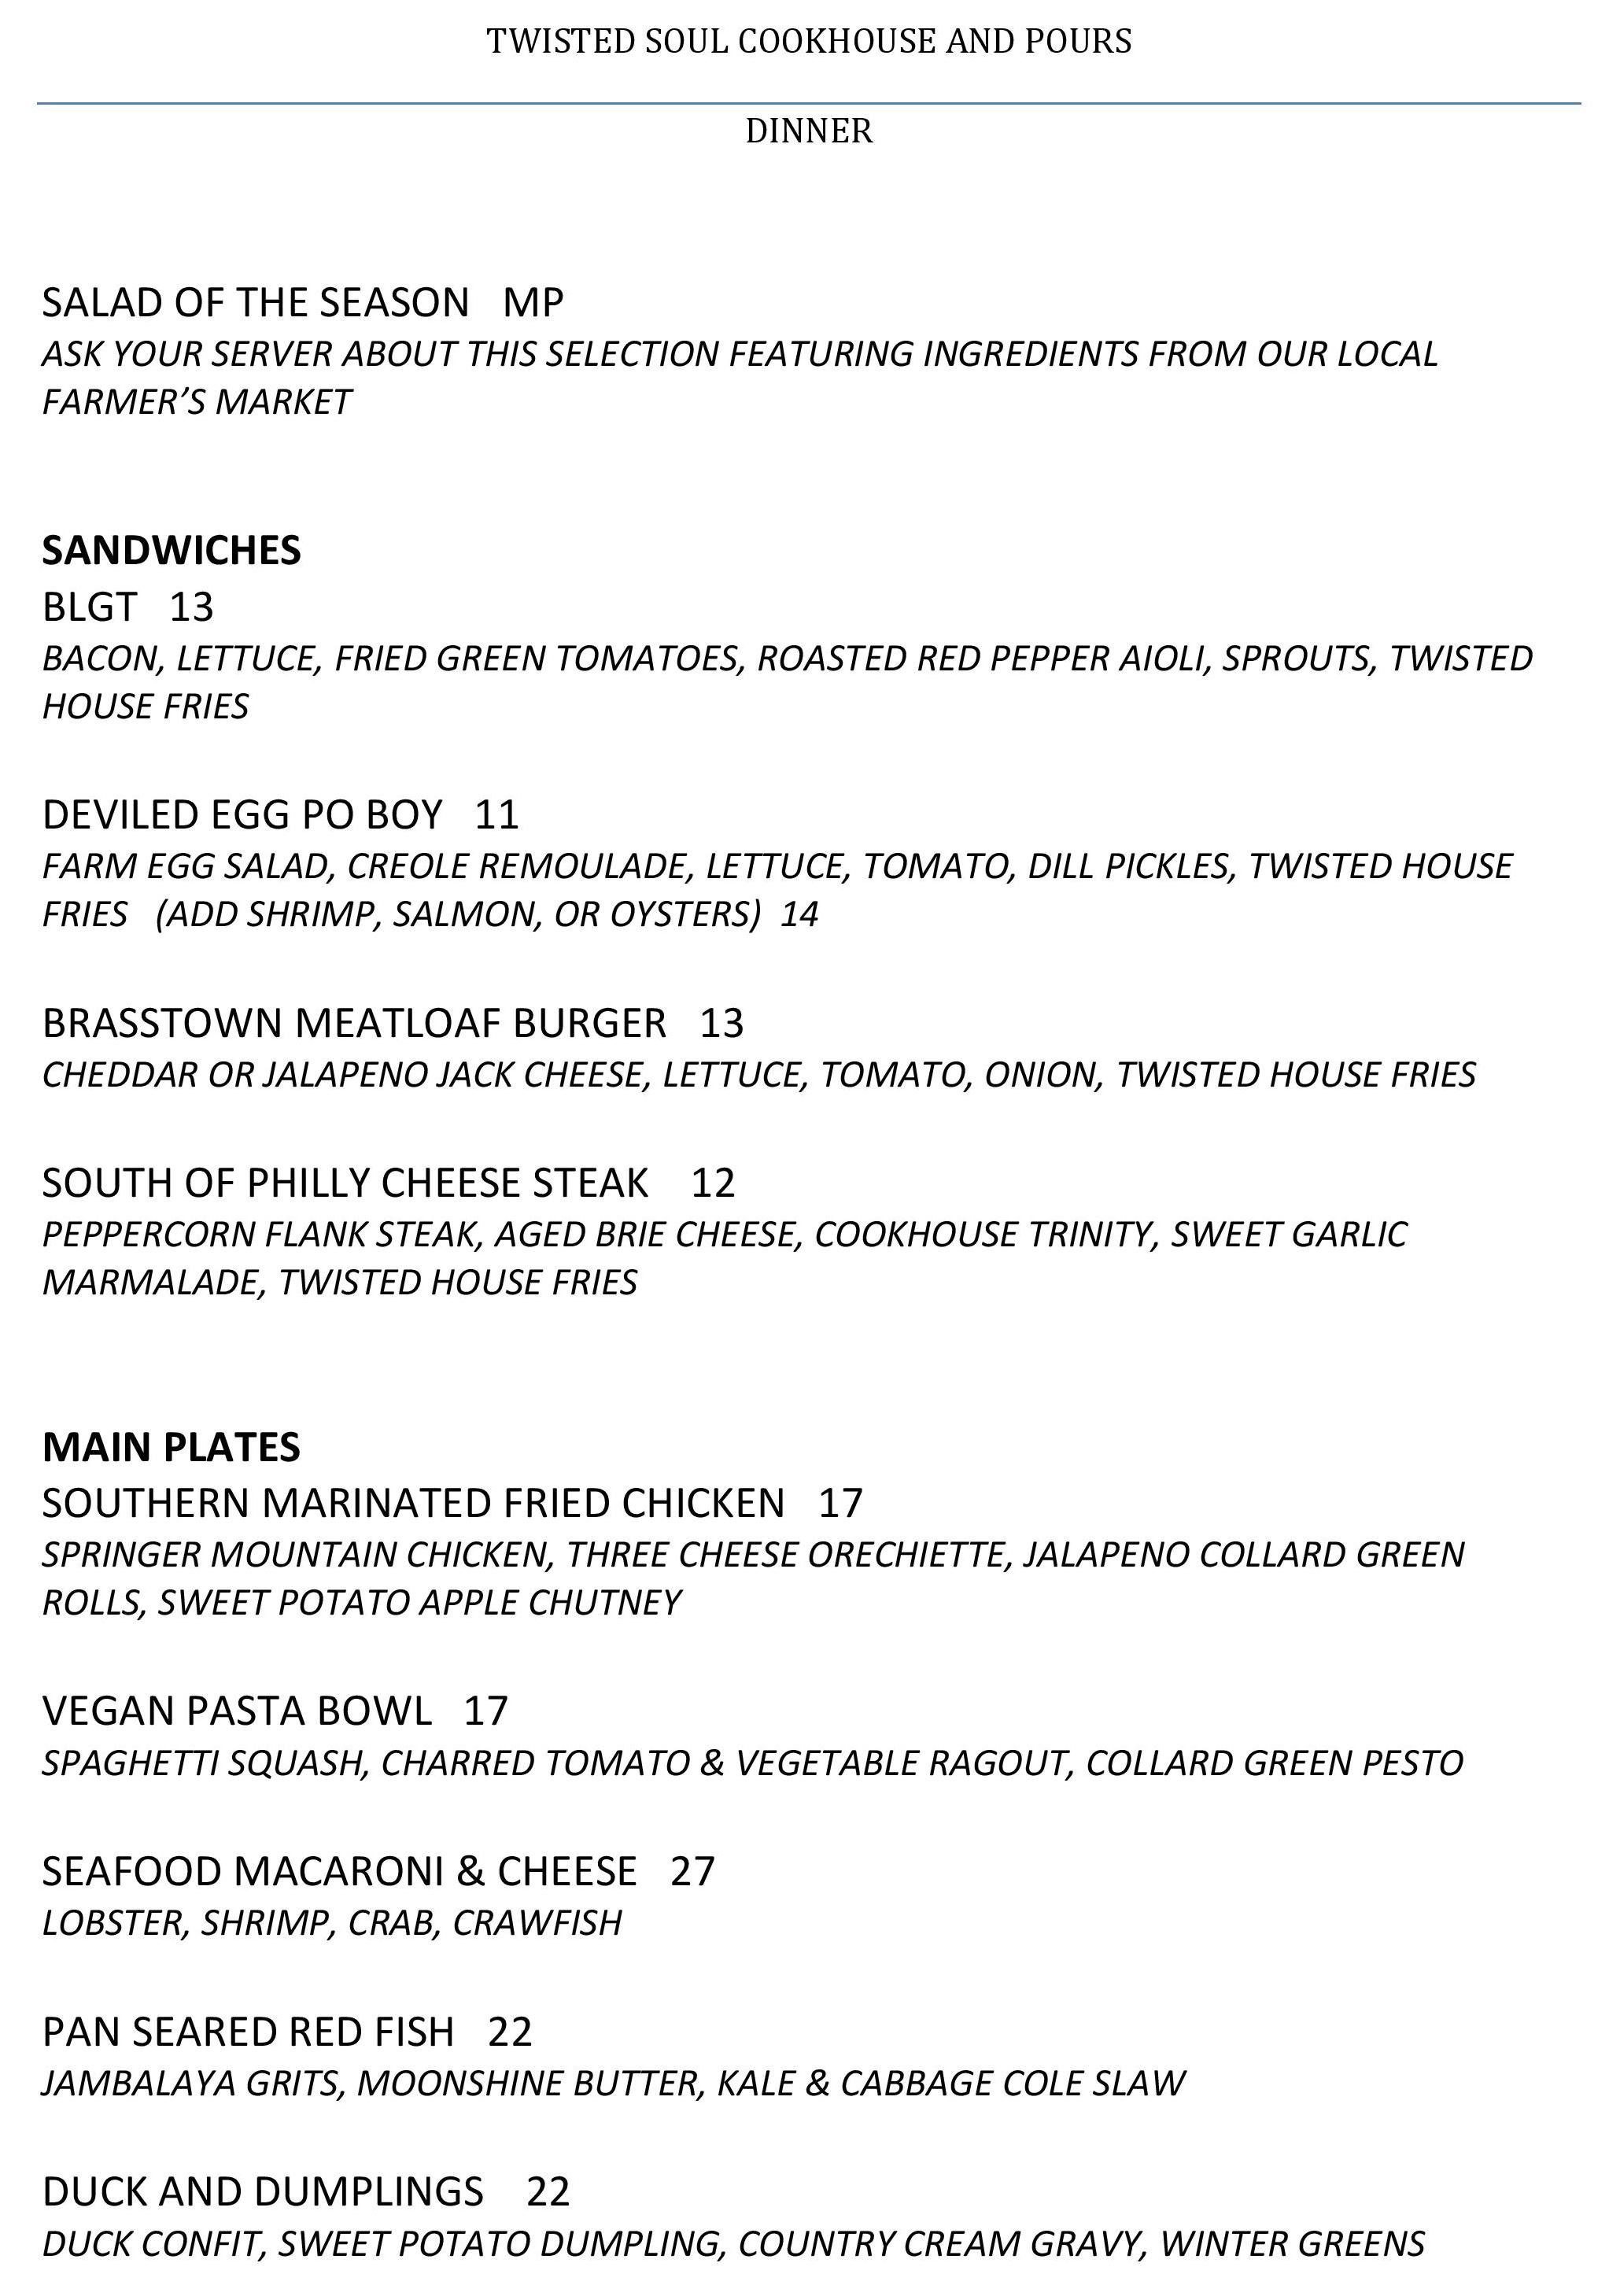 here's the menu for twisted soul cookhouse & pours, certified open